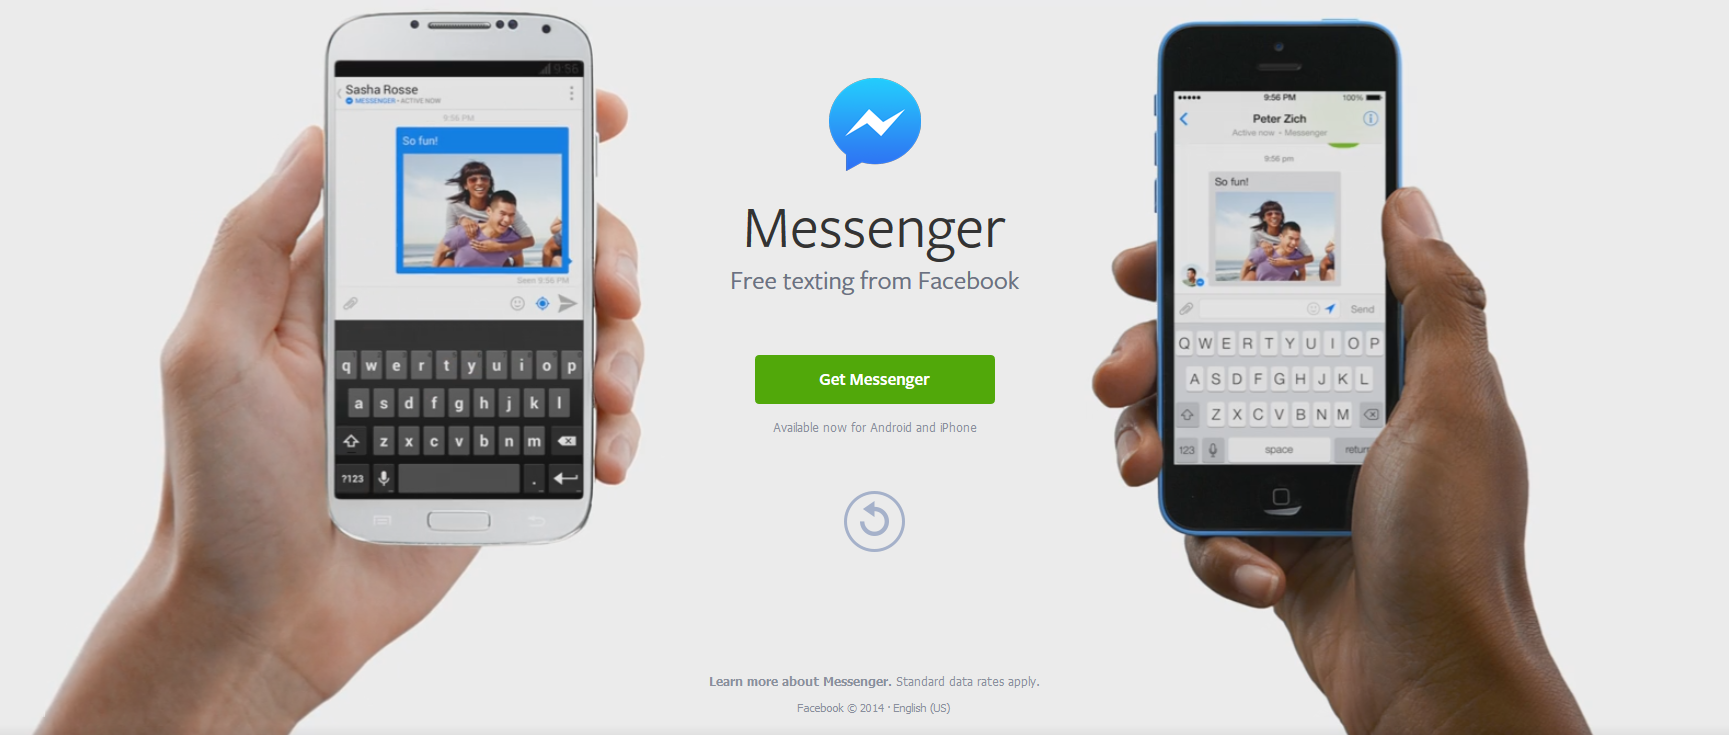 Facebook_Messenger_Mobile